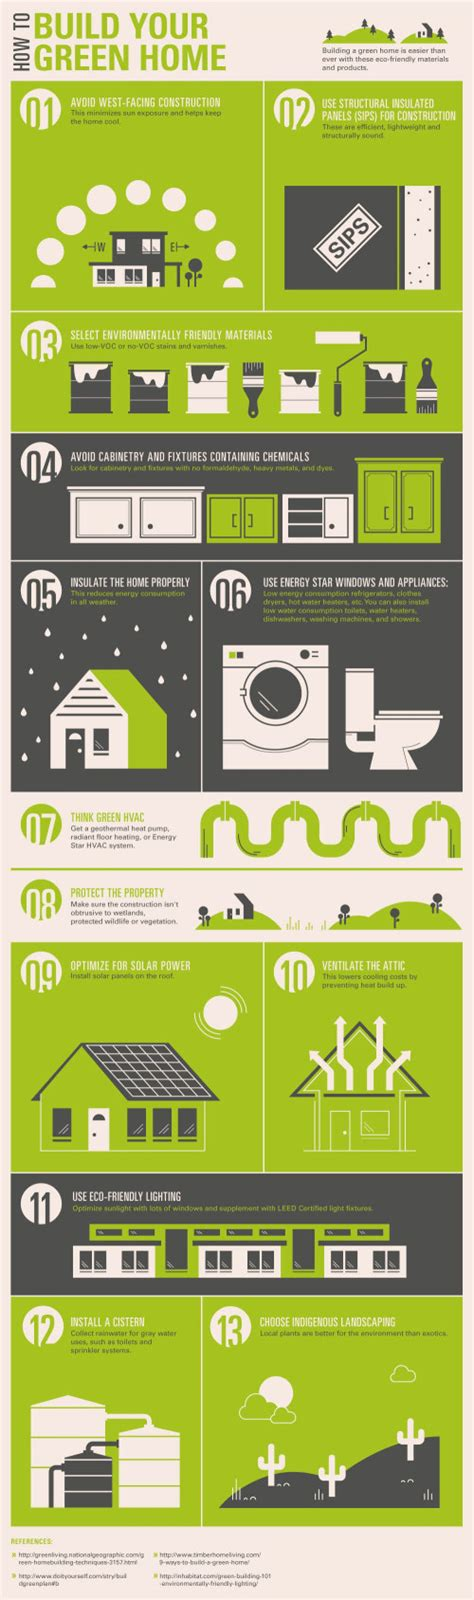 cost of building a house visual ly build your dream green home in 13 steps visual ly